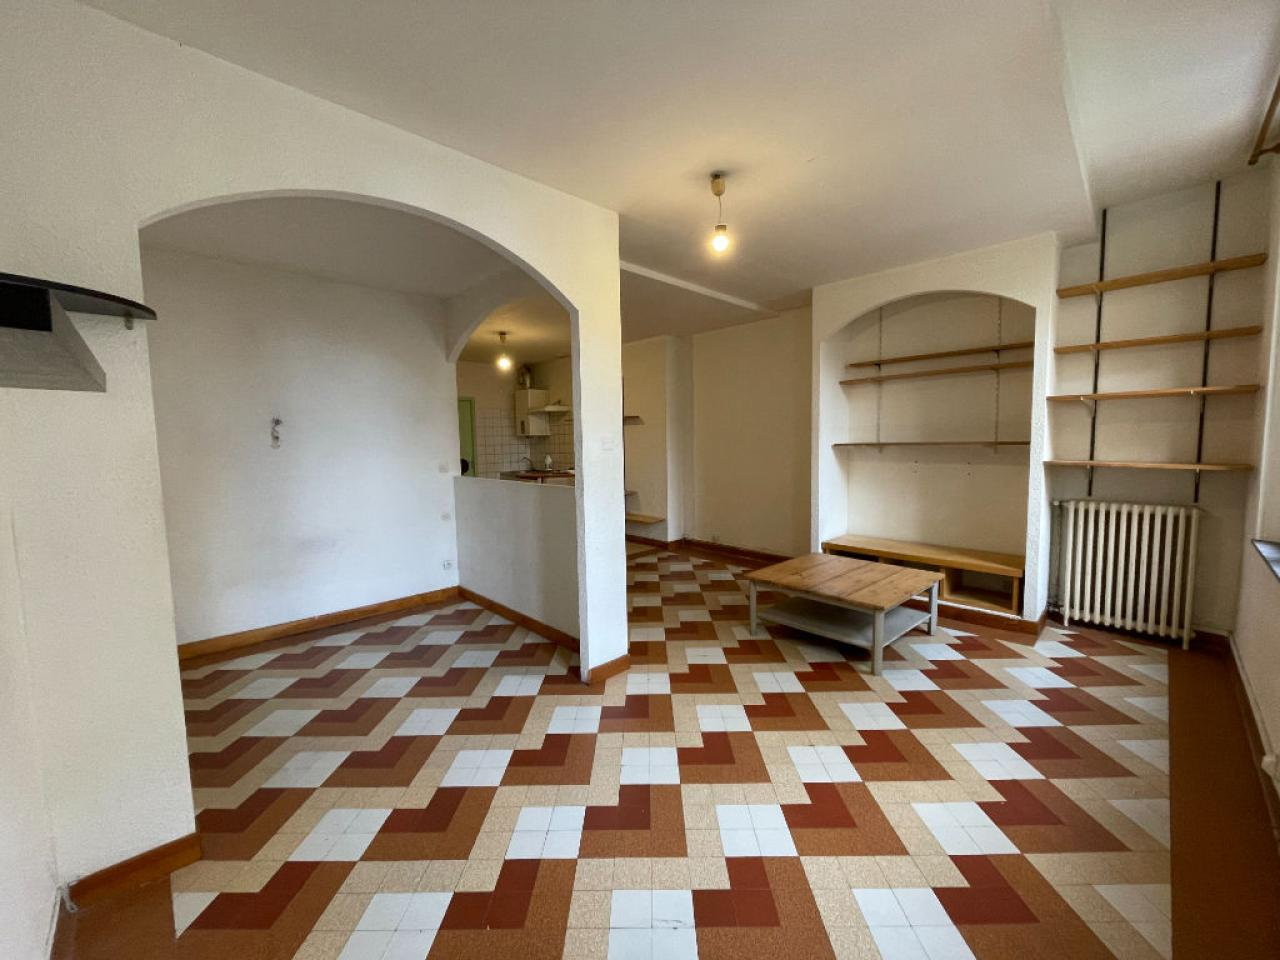 Apartment CARCASSONNE | 350 € / month